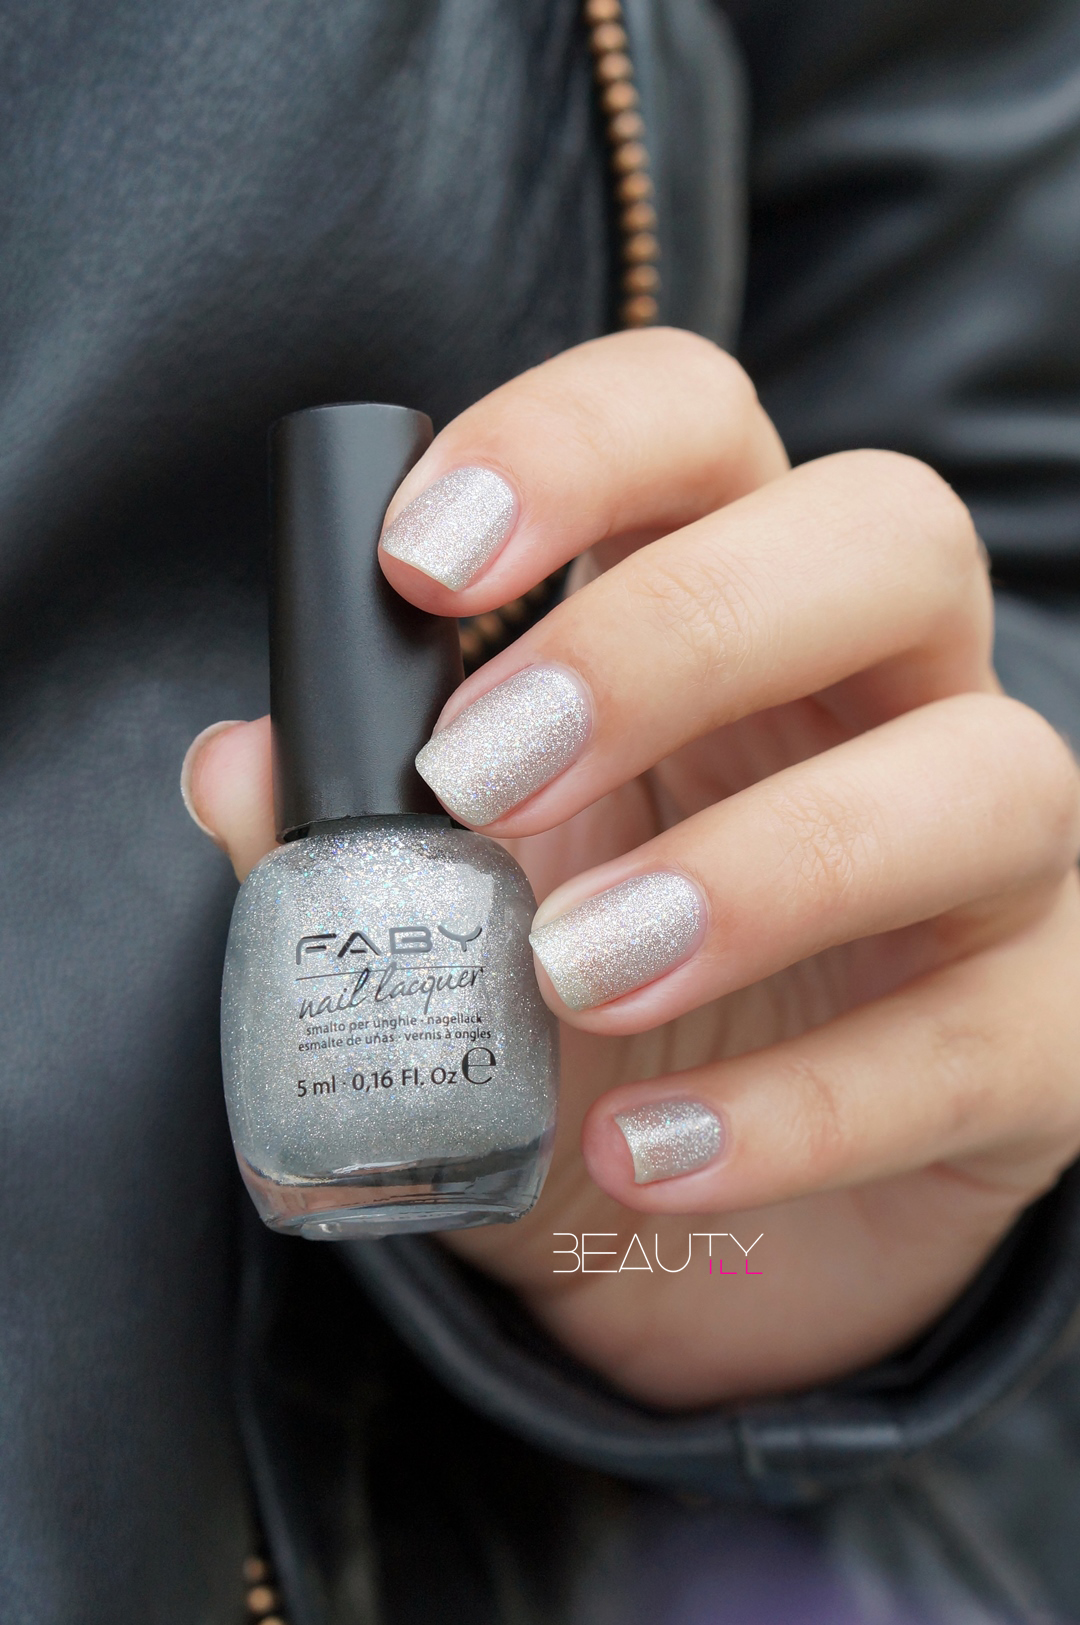 Faby Illusion swatches